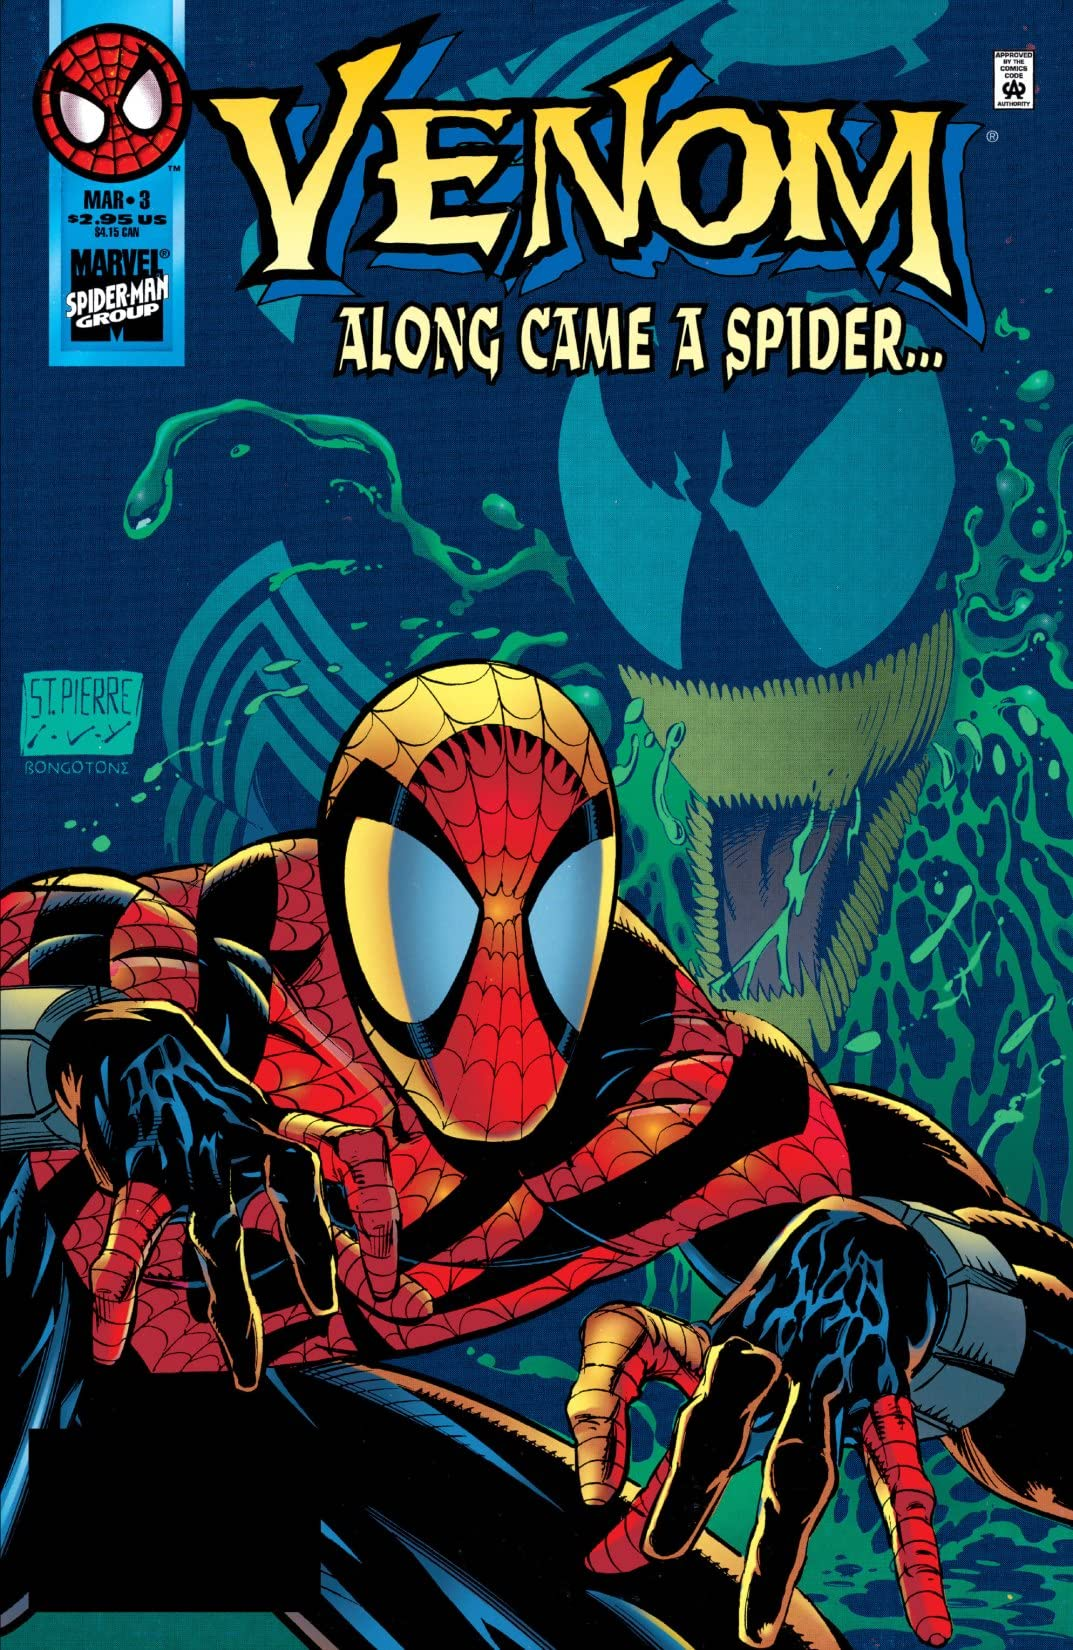 Venom: Along Came A Spider (1996) #3 (of 4)